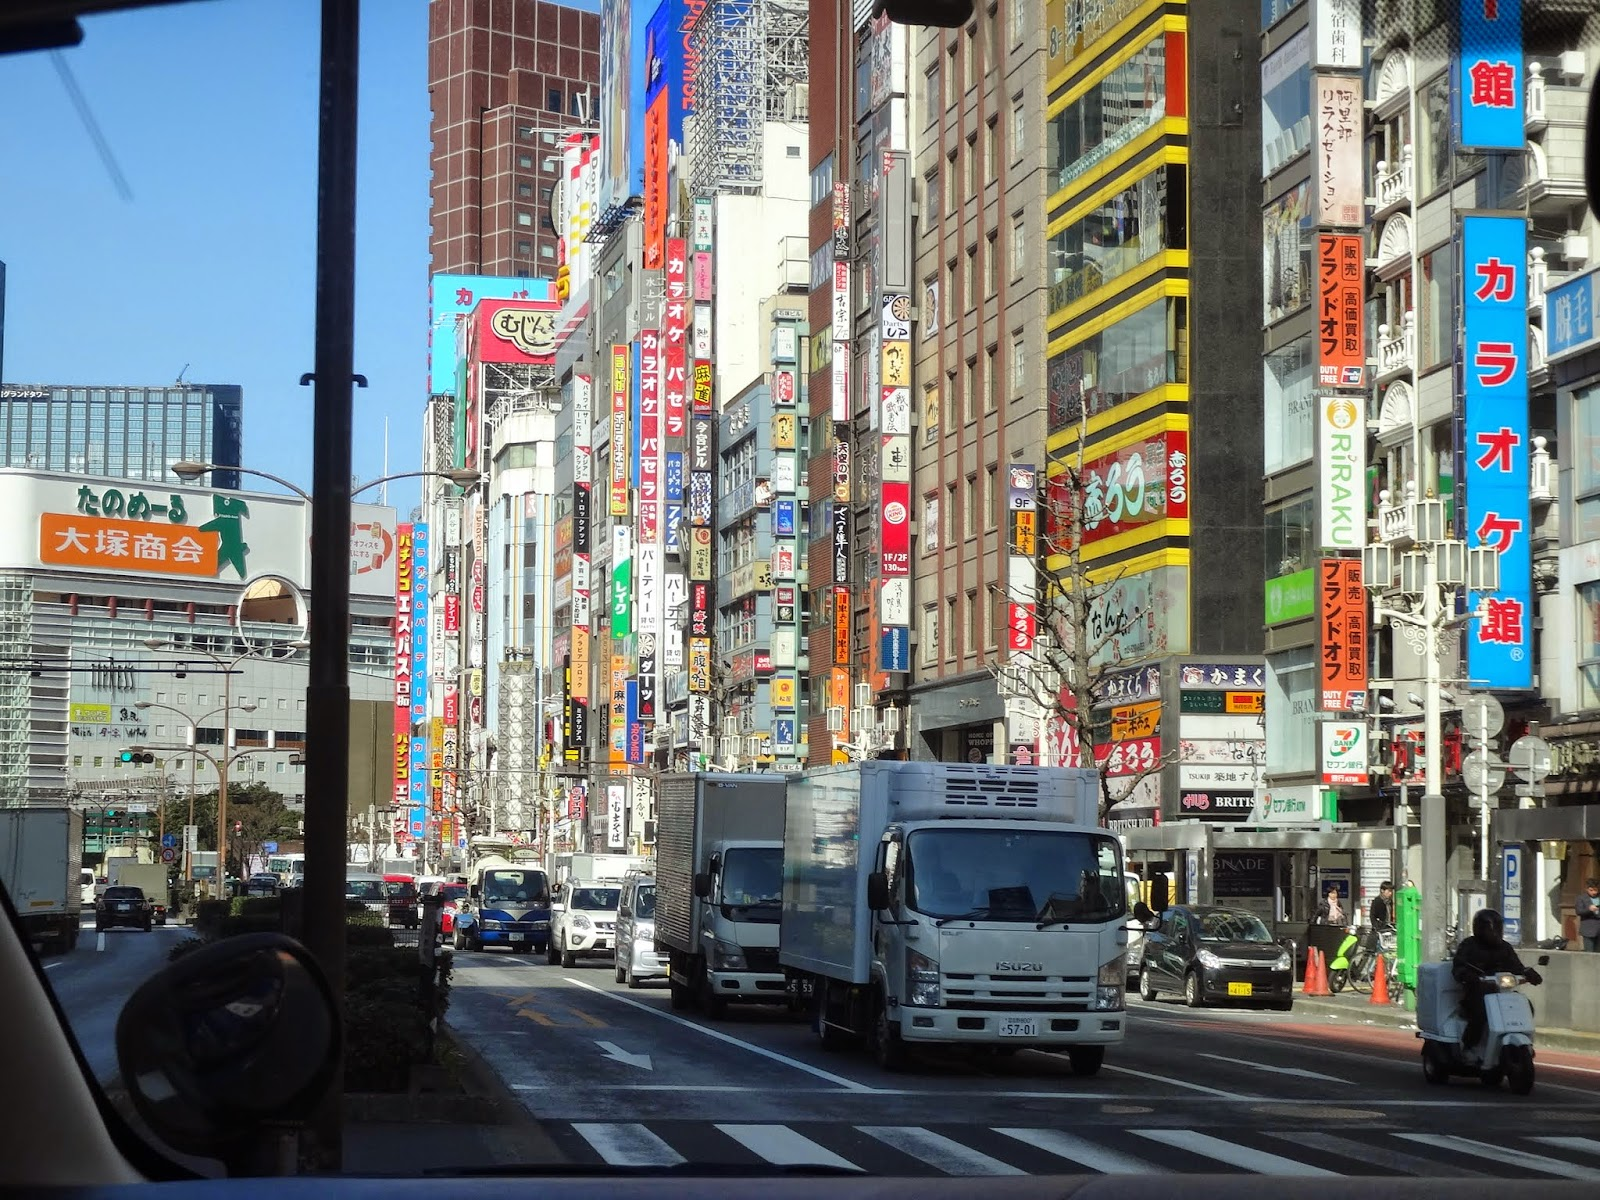 Welcome to Shinjuku city after a long ride from Narita International Airport in Tokyo, Japan